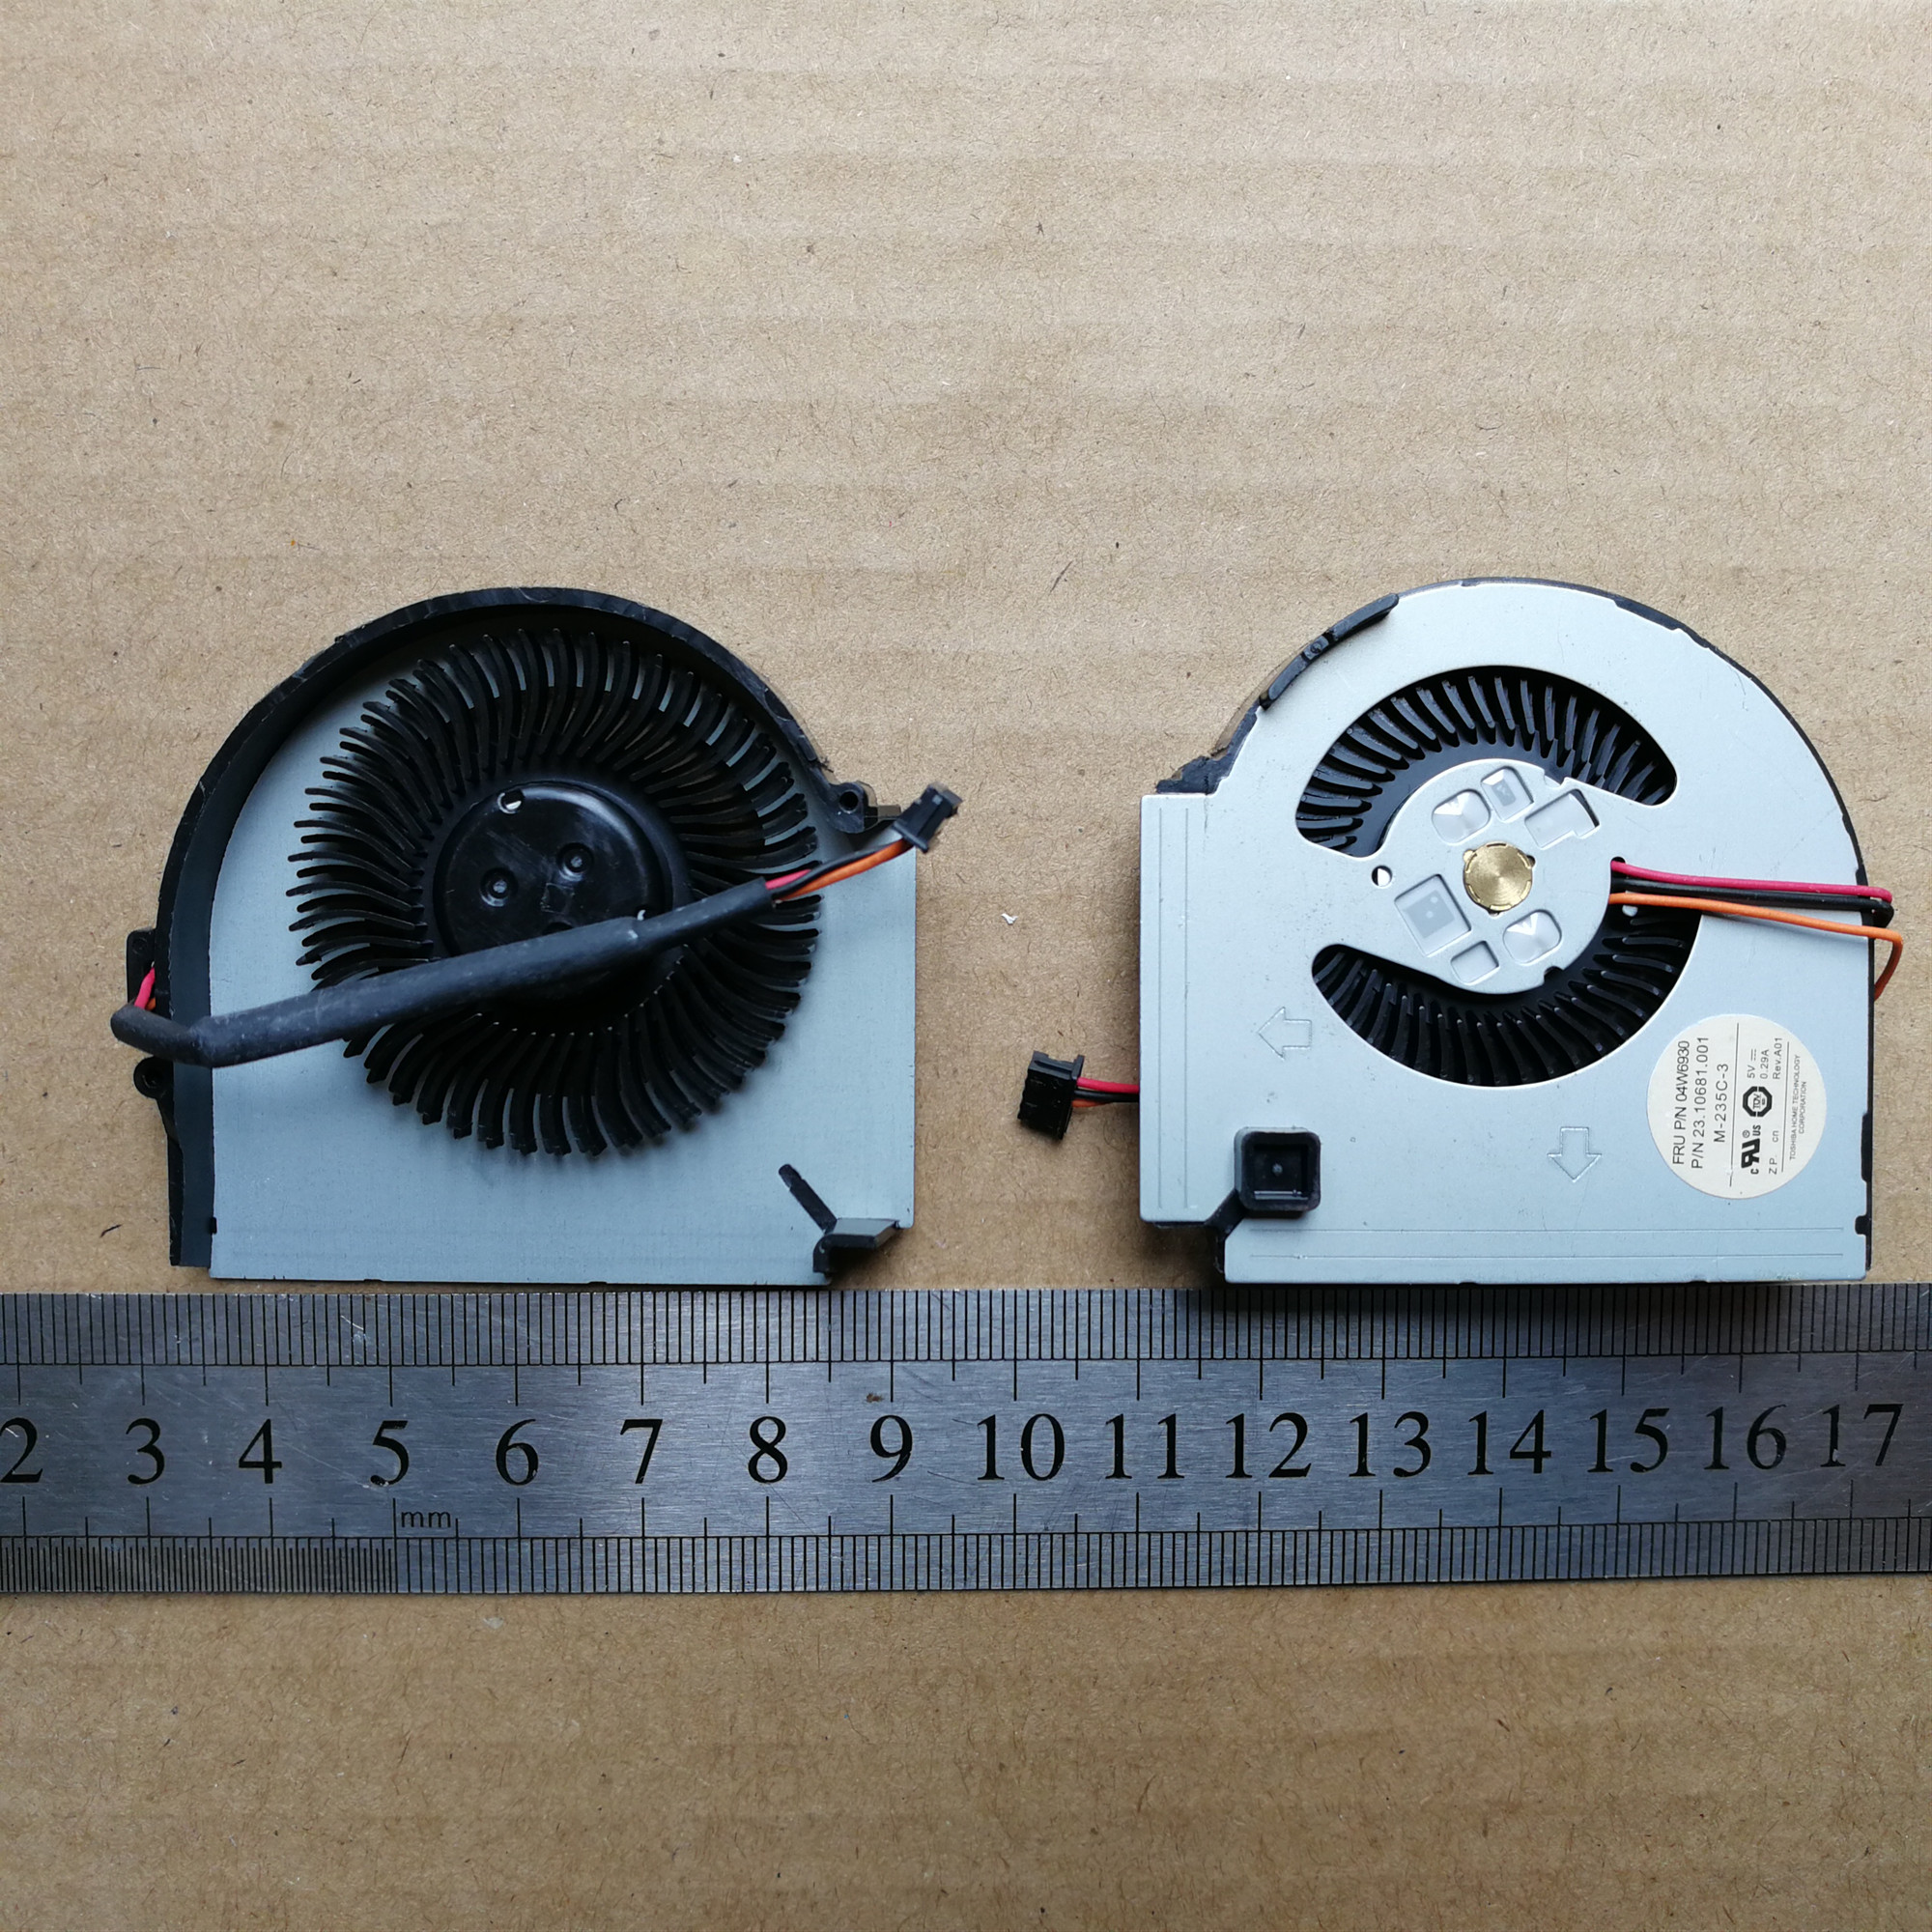 New Laptop CPU Fan For IBM Lenovo Thinkpad X230s X230t X230 X230I With Heatsink 04W6930 04W6922 Reviews 23.10681.001 image